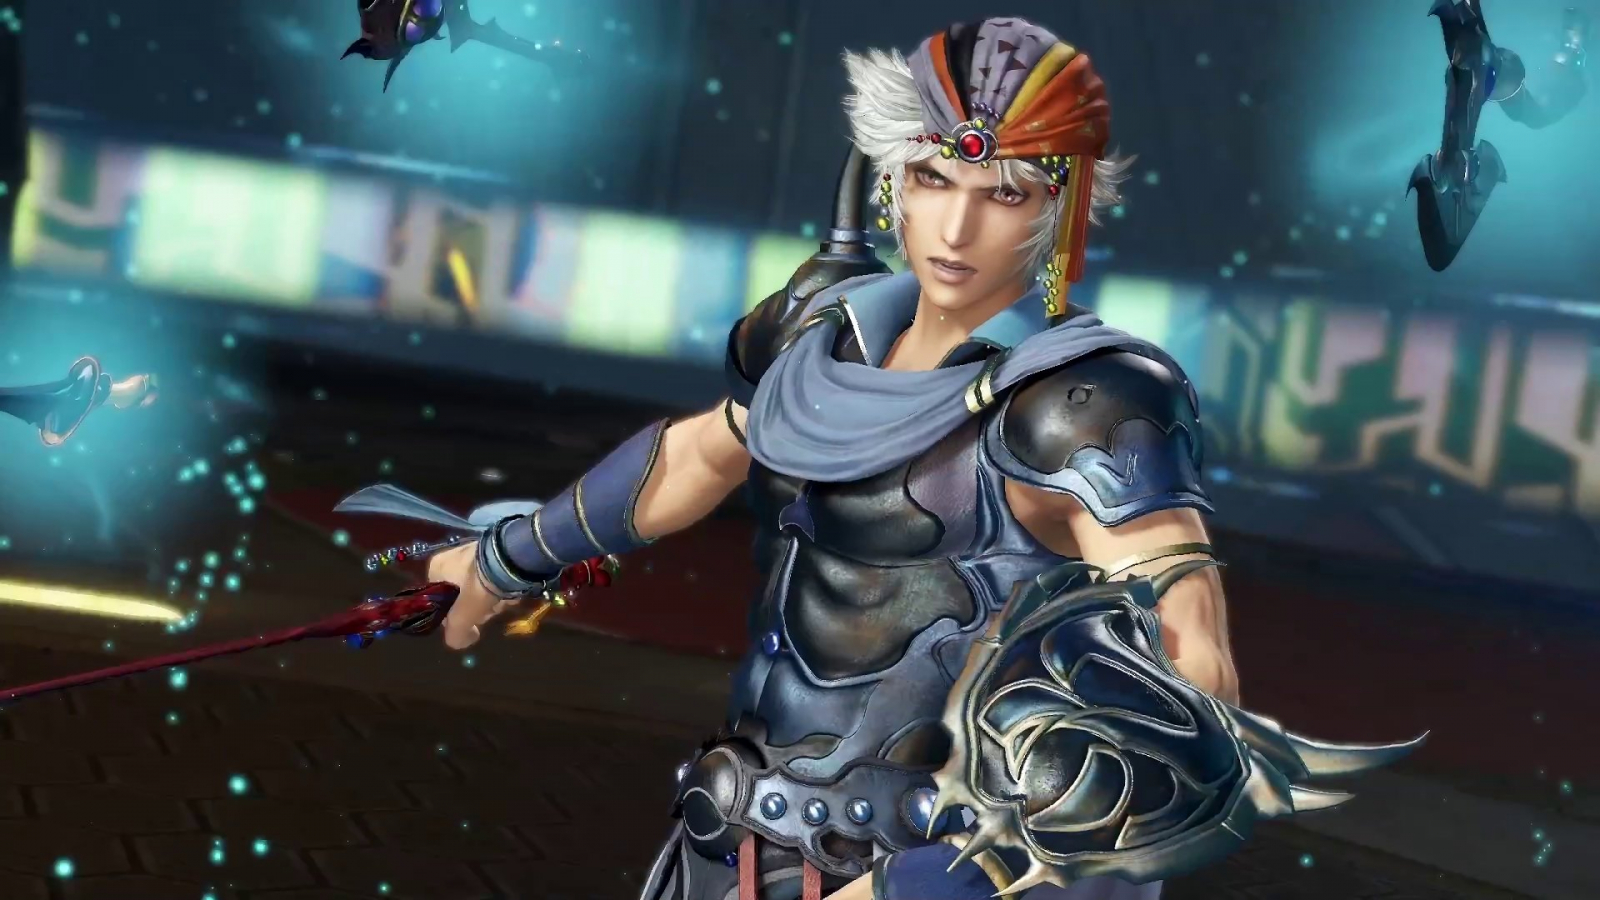 Free Download Dissidia Final Fantasy Nt Hd Wallpaper Background